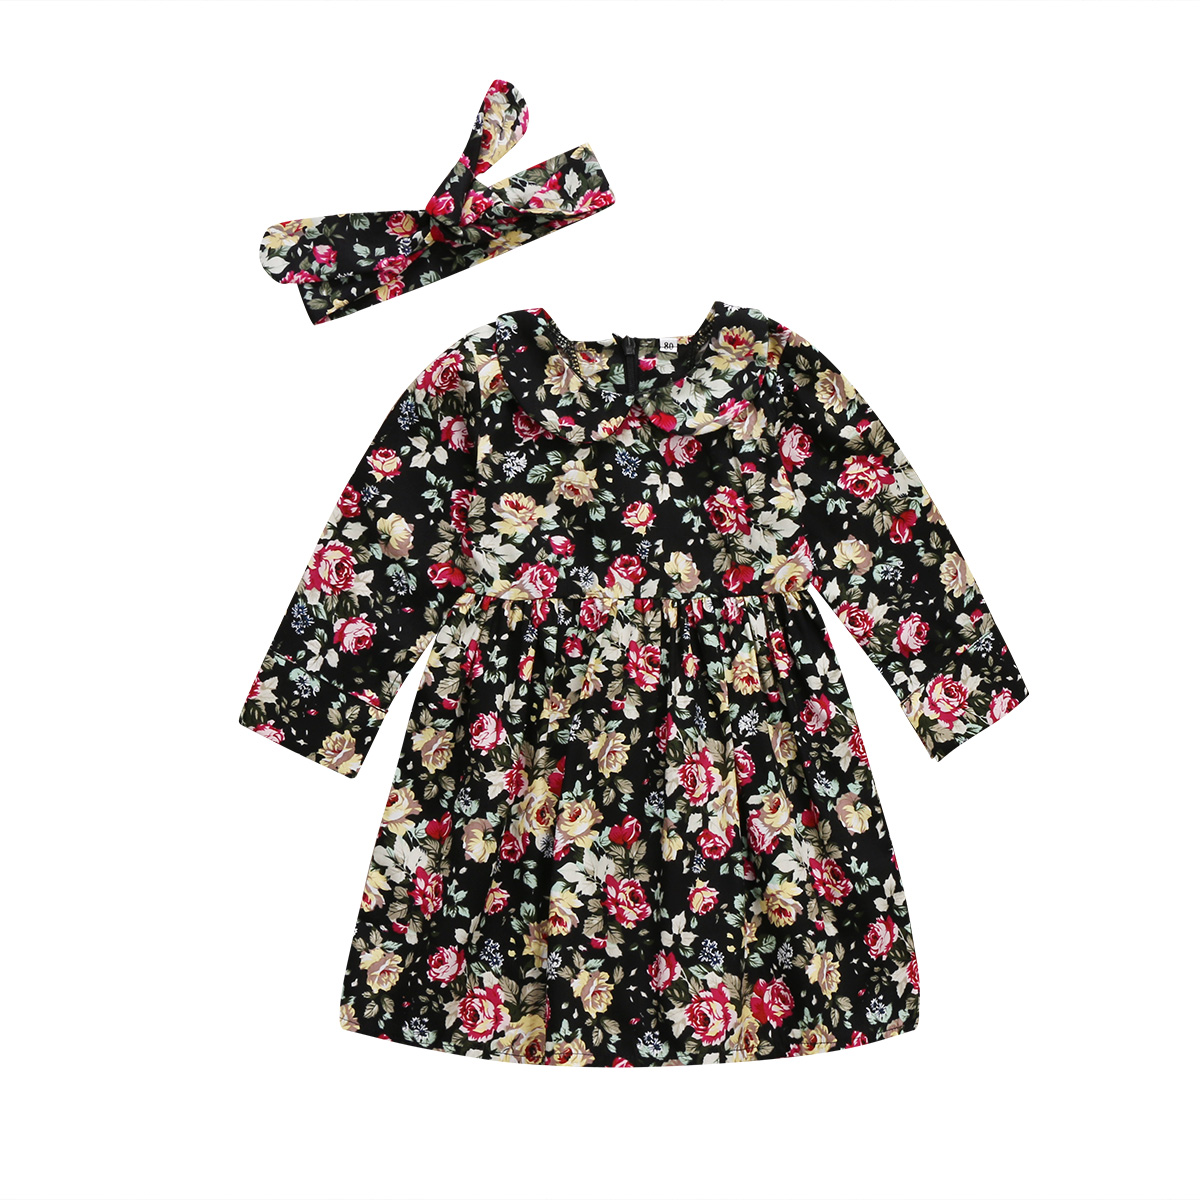 Fashion Toddler Baby Kids Girls Dress Long Sleeve Floral Party Dress Sundress Clothes Autumn Winter Cotton Vestidos Handband 2pc uoipae party dress girls 2018 autumn